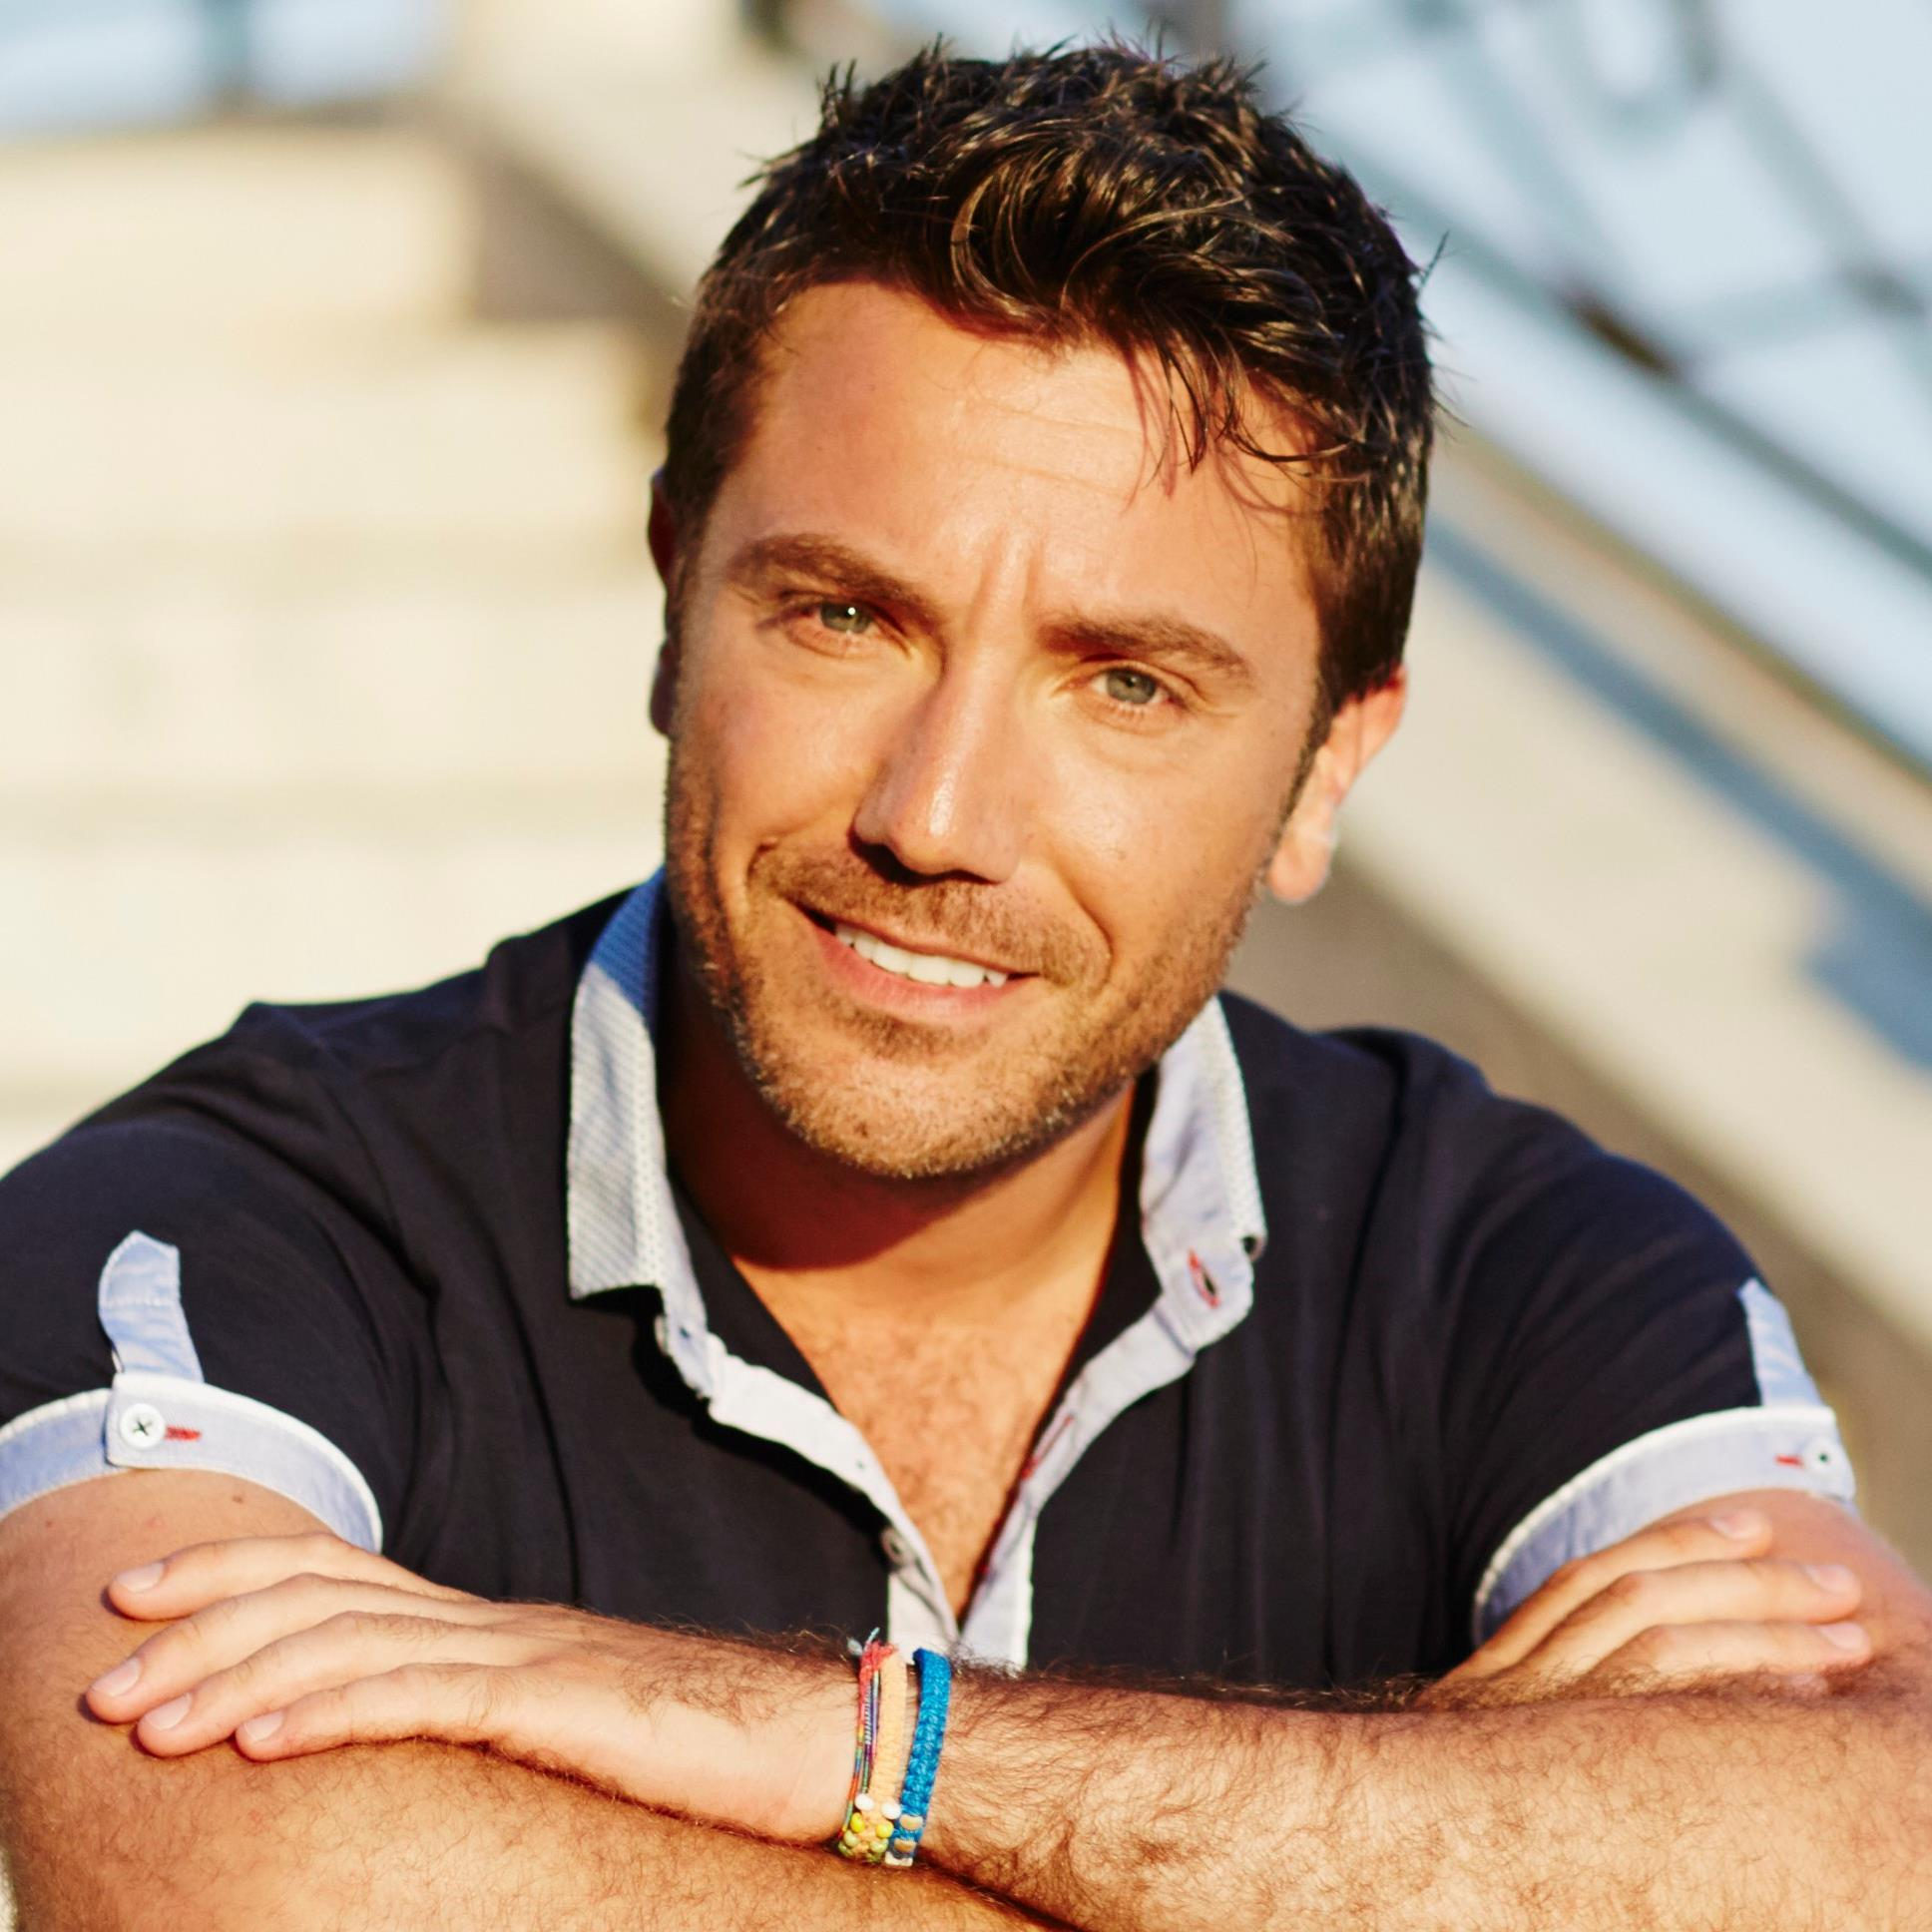 Enjoy Celebrity Radio's Italian Chef Gino D'Acampo Life Story Interview…. Gino D'Acampo is the handsome Italian-British big personality chef and television personality famous for his […]